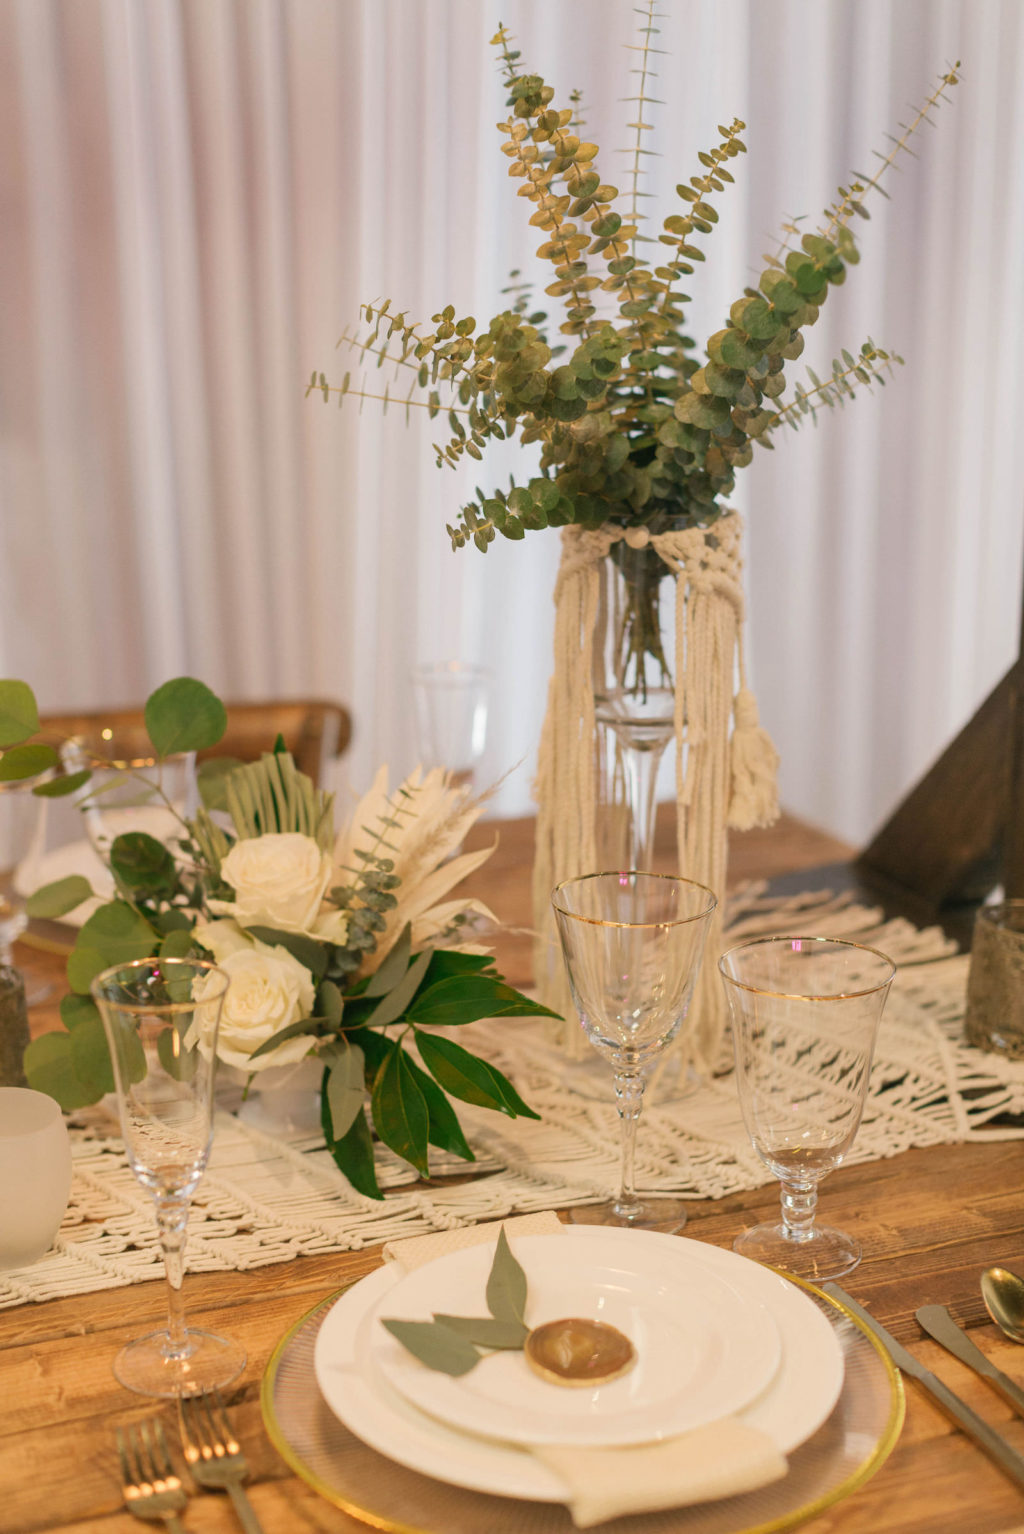 Boho Eucalyptus Greenery Centerpieces with Macrame Table Runner | Reception Decor Ideas and Inspiration | Styled With Love at St. Pete Beach Wedding Venue Bellwether Beach Resort